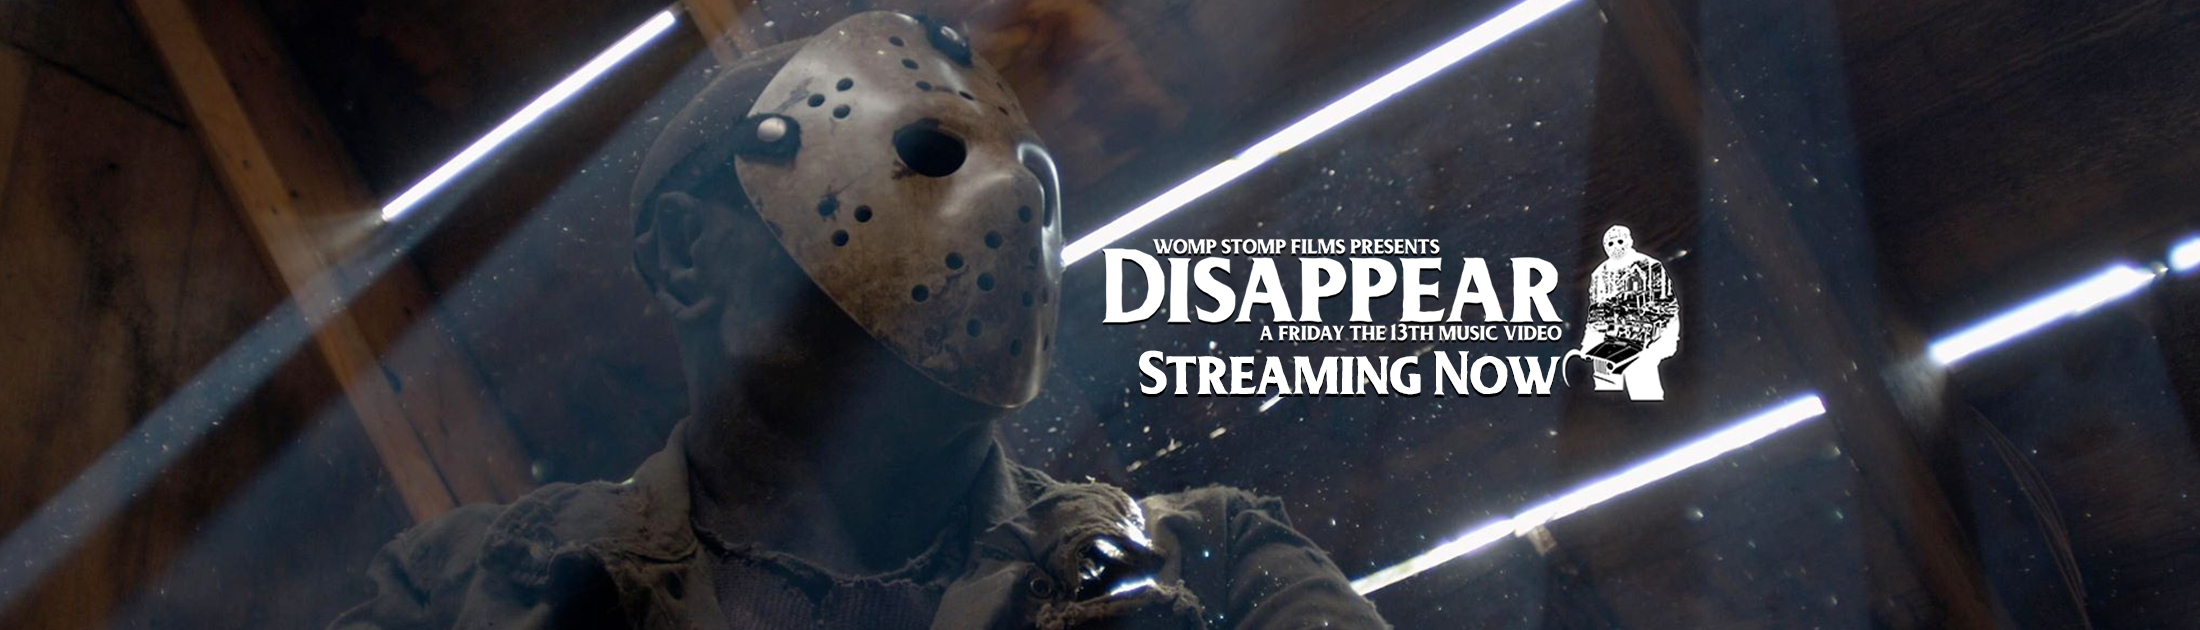 04_disappear_streamingnow